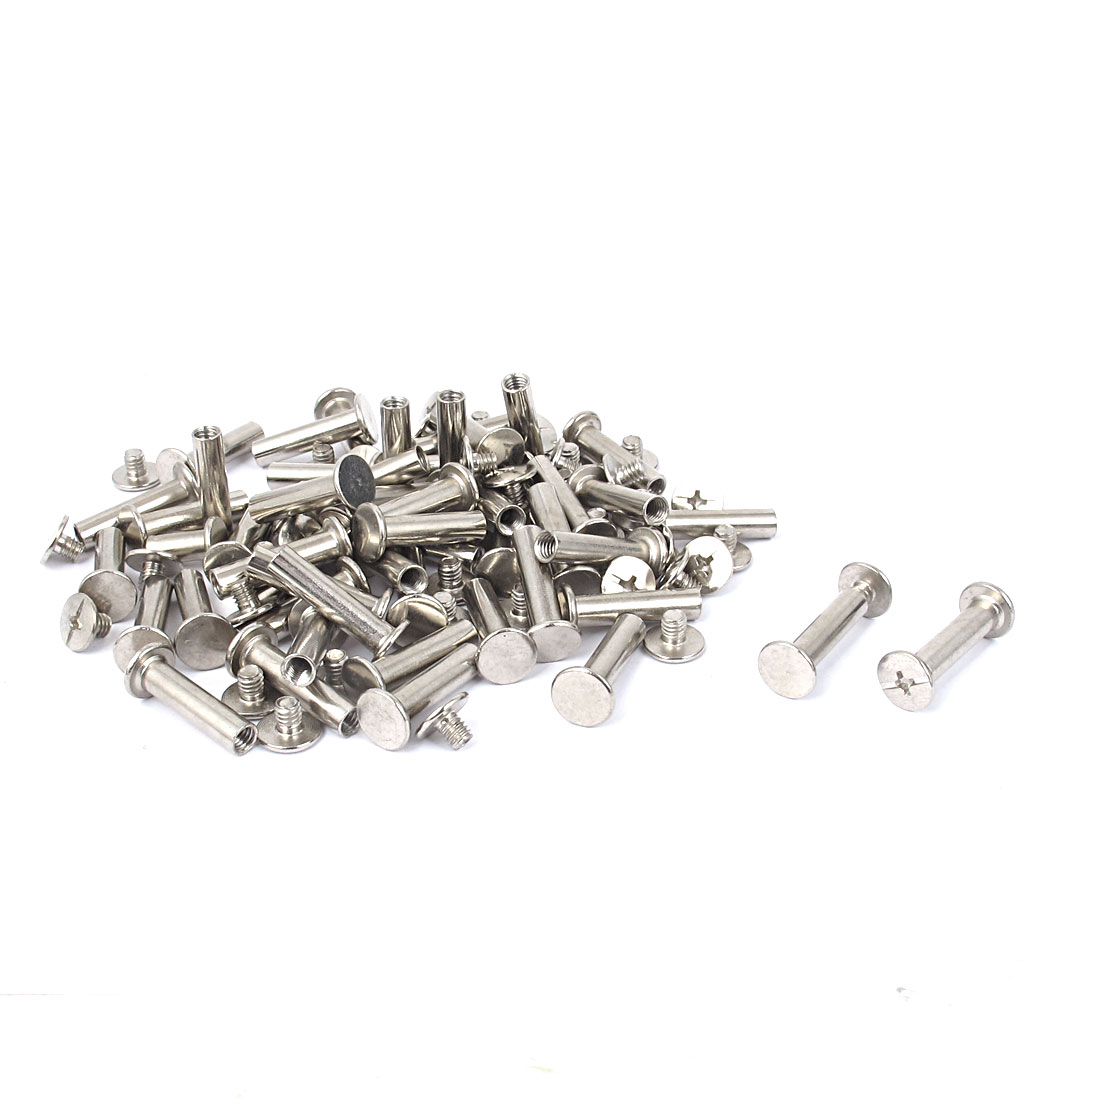 Scrapbooking Album Nickel Plated Binding Screws Posts Docking Screw Rivet 5x20mm 50pcs